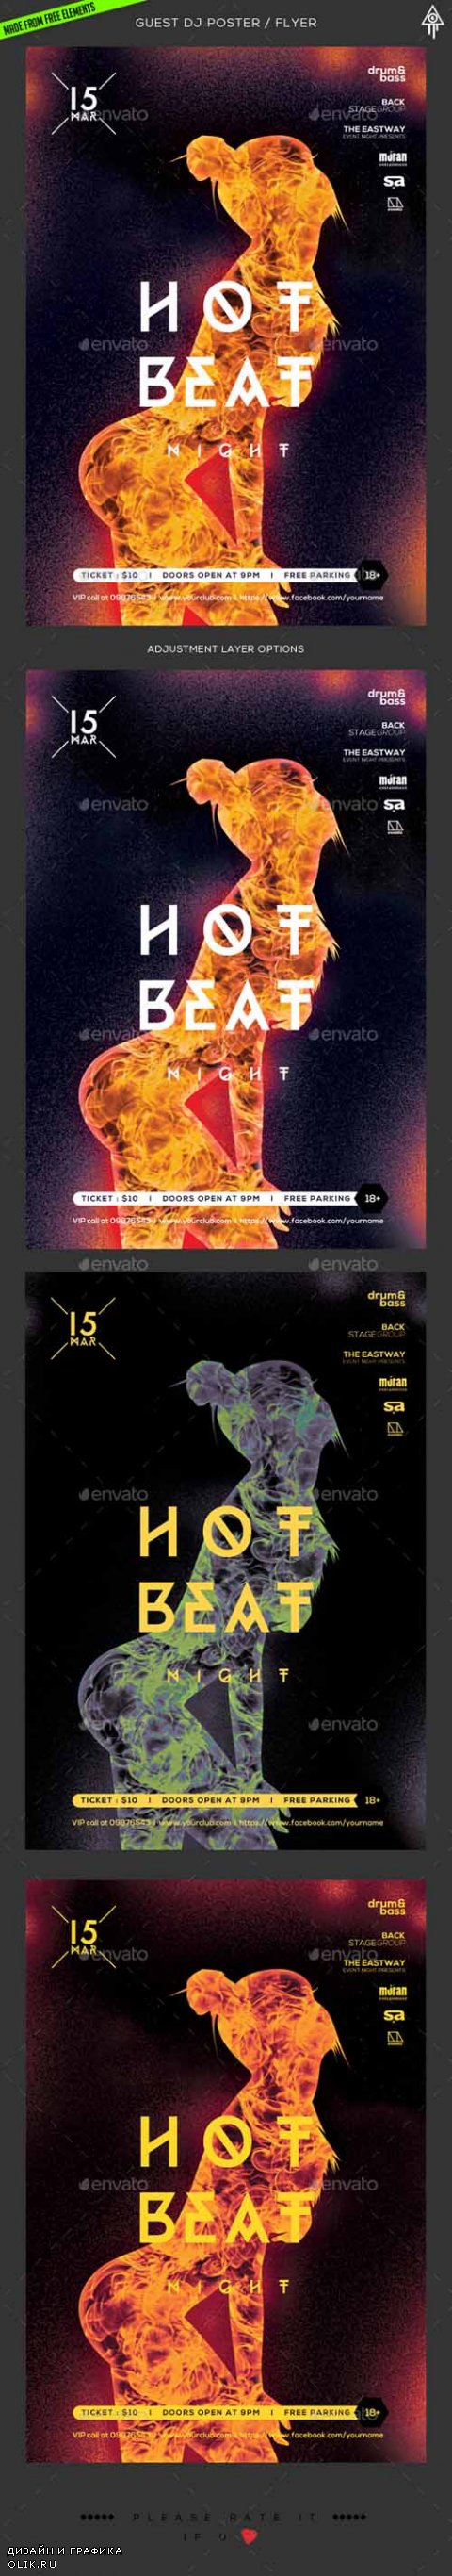 GraphicRiver Hot Beats Poster / Flyer 16347754